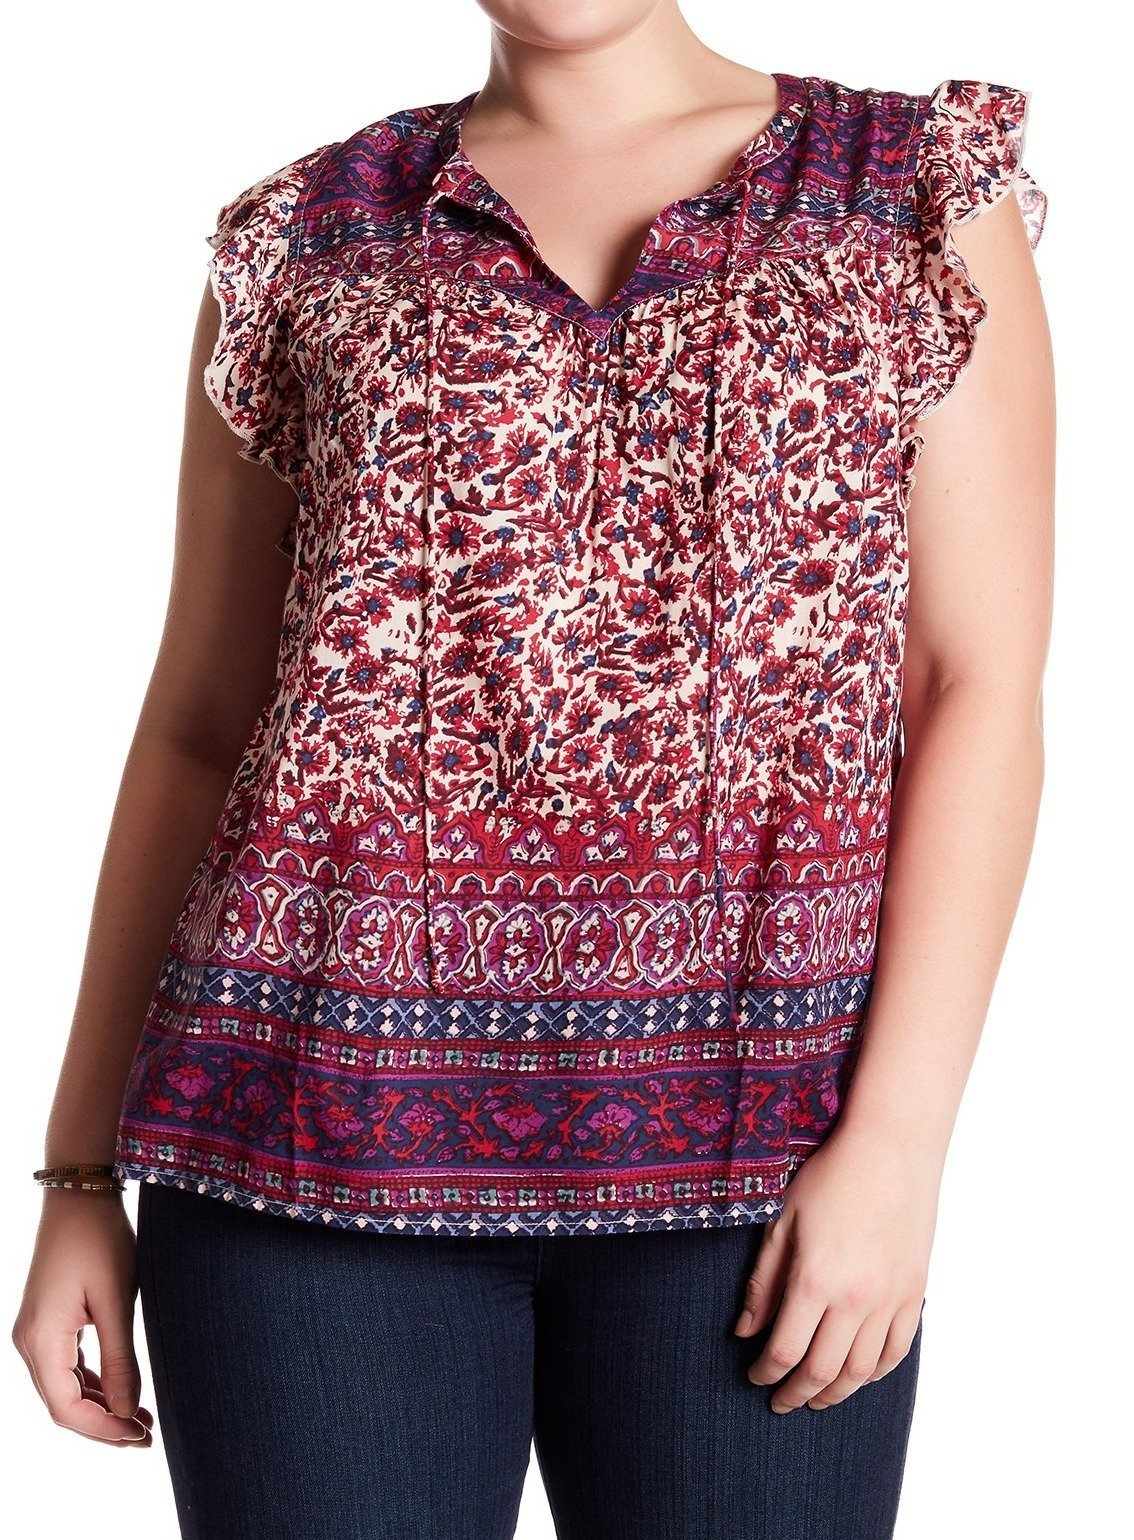 Lucky Brand Women's Plus Size Lucy Peasant Top, Purple/Multi, 1X